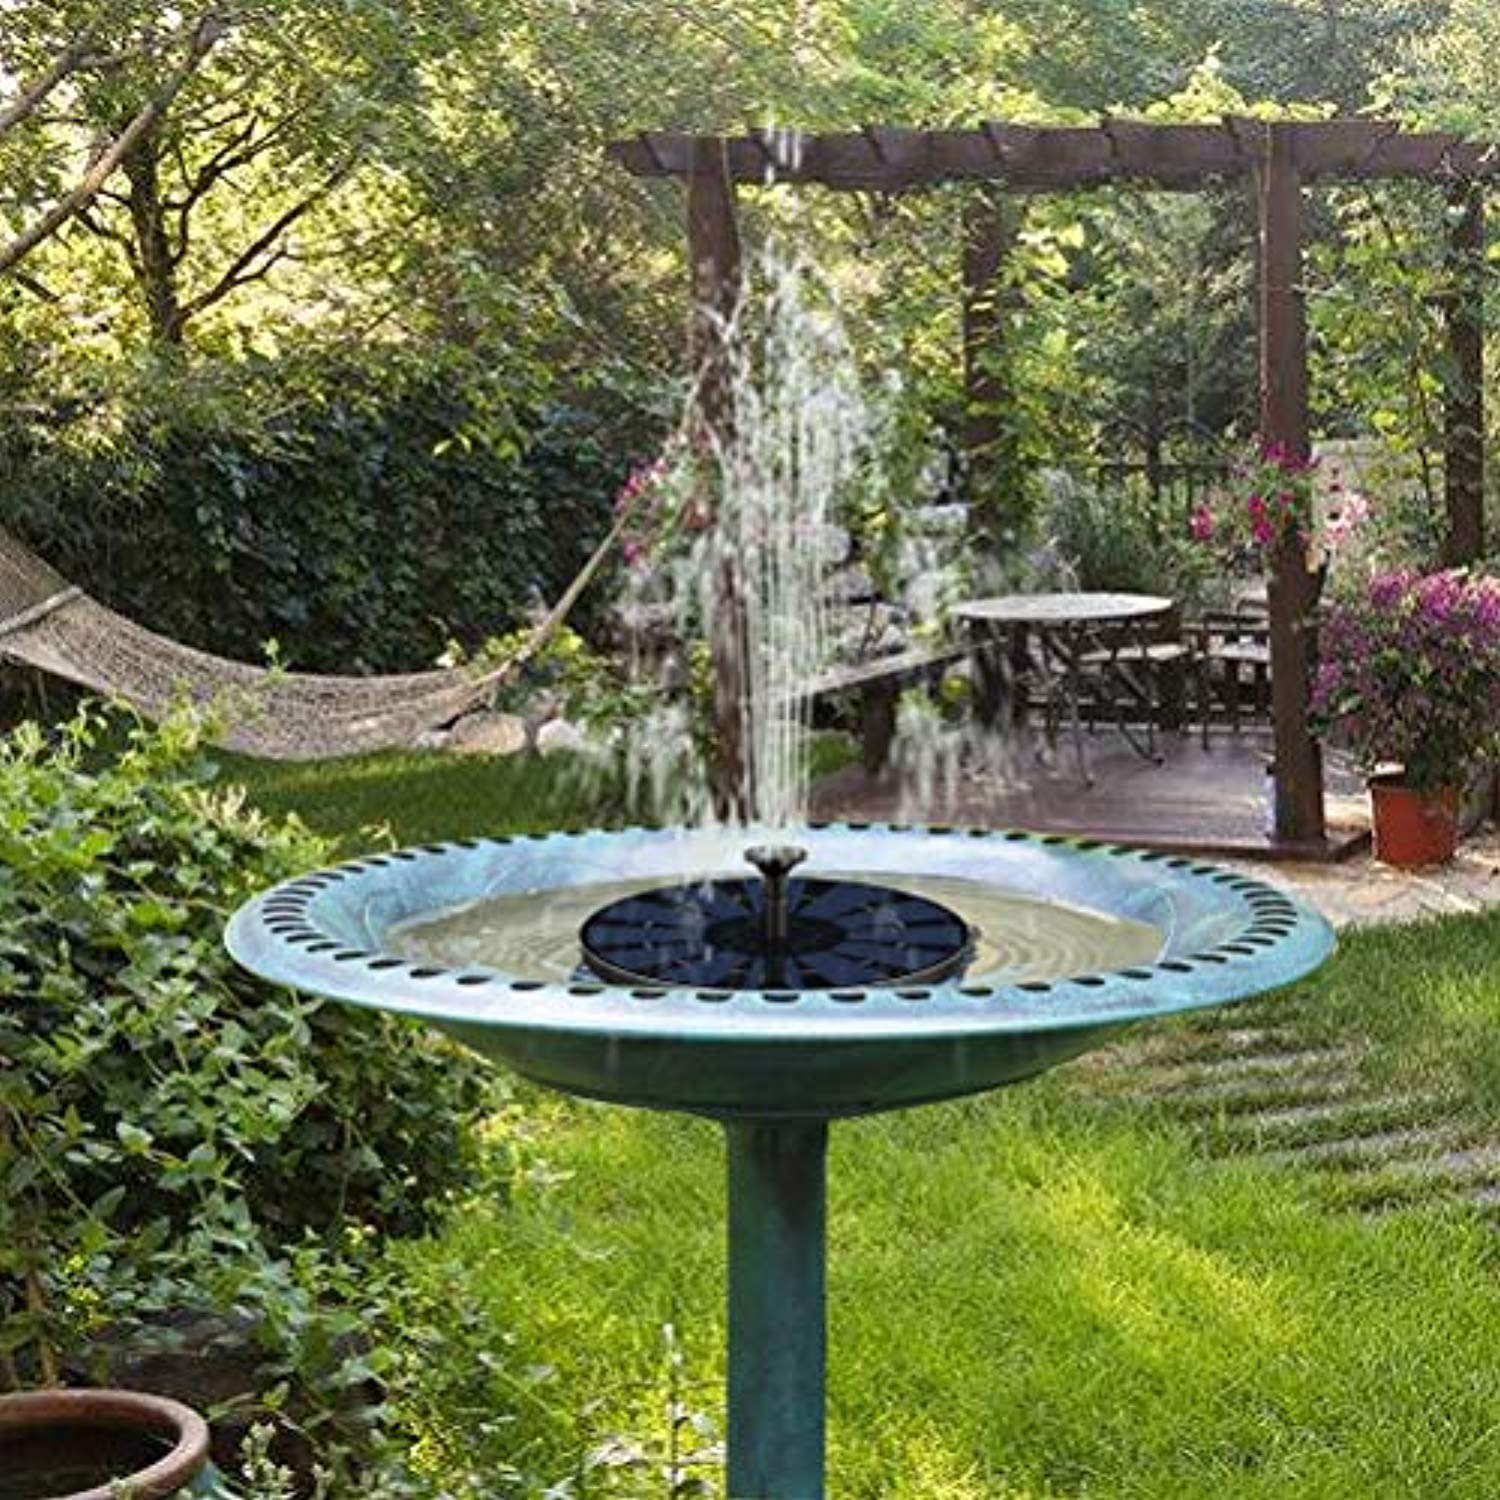 Ankway 2.5W Solar Powered Fountain Pump with Built-in Battery (2019 Newest), Free Standing Solar Fountain Pump High Efficiency Outdoor Water Pumps for Bird Bath Pond Garden Decoration